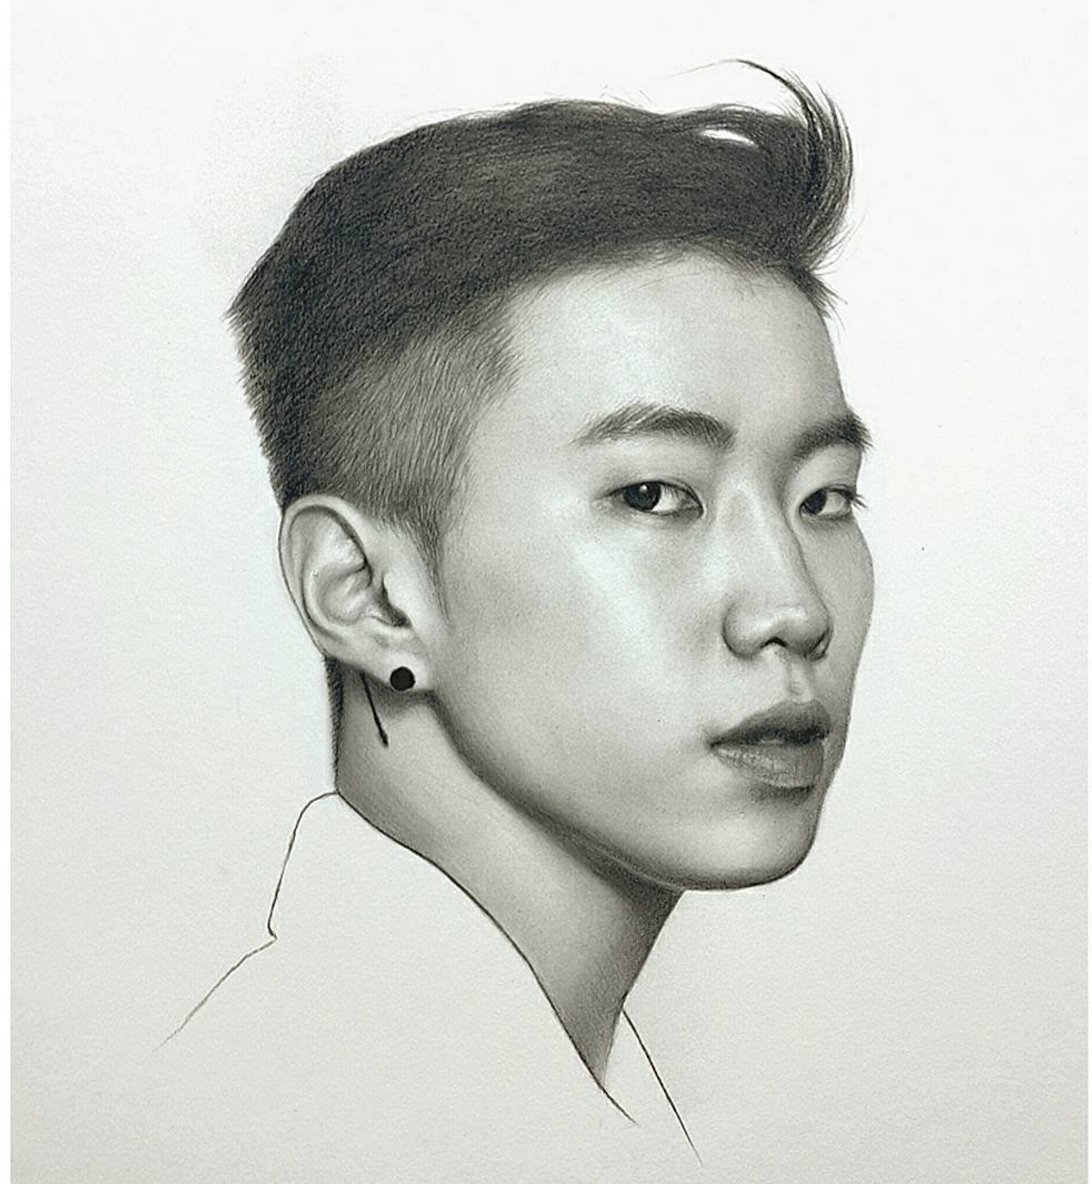 Amazing pencil drawing of #JayPark @JAYBUMAOM by s_ilhwan on IG (https://t.co/cOEFuBEK2r) https://t.co/ZlNeF5wY0E